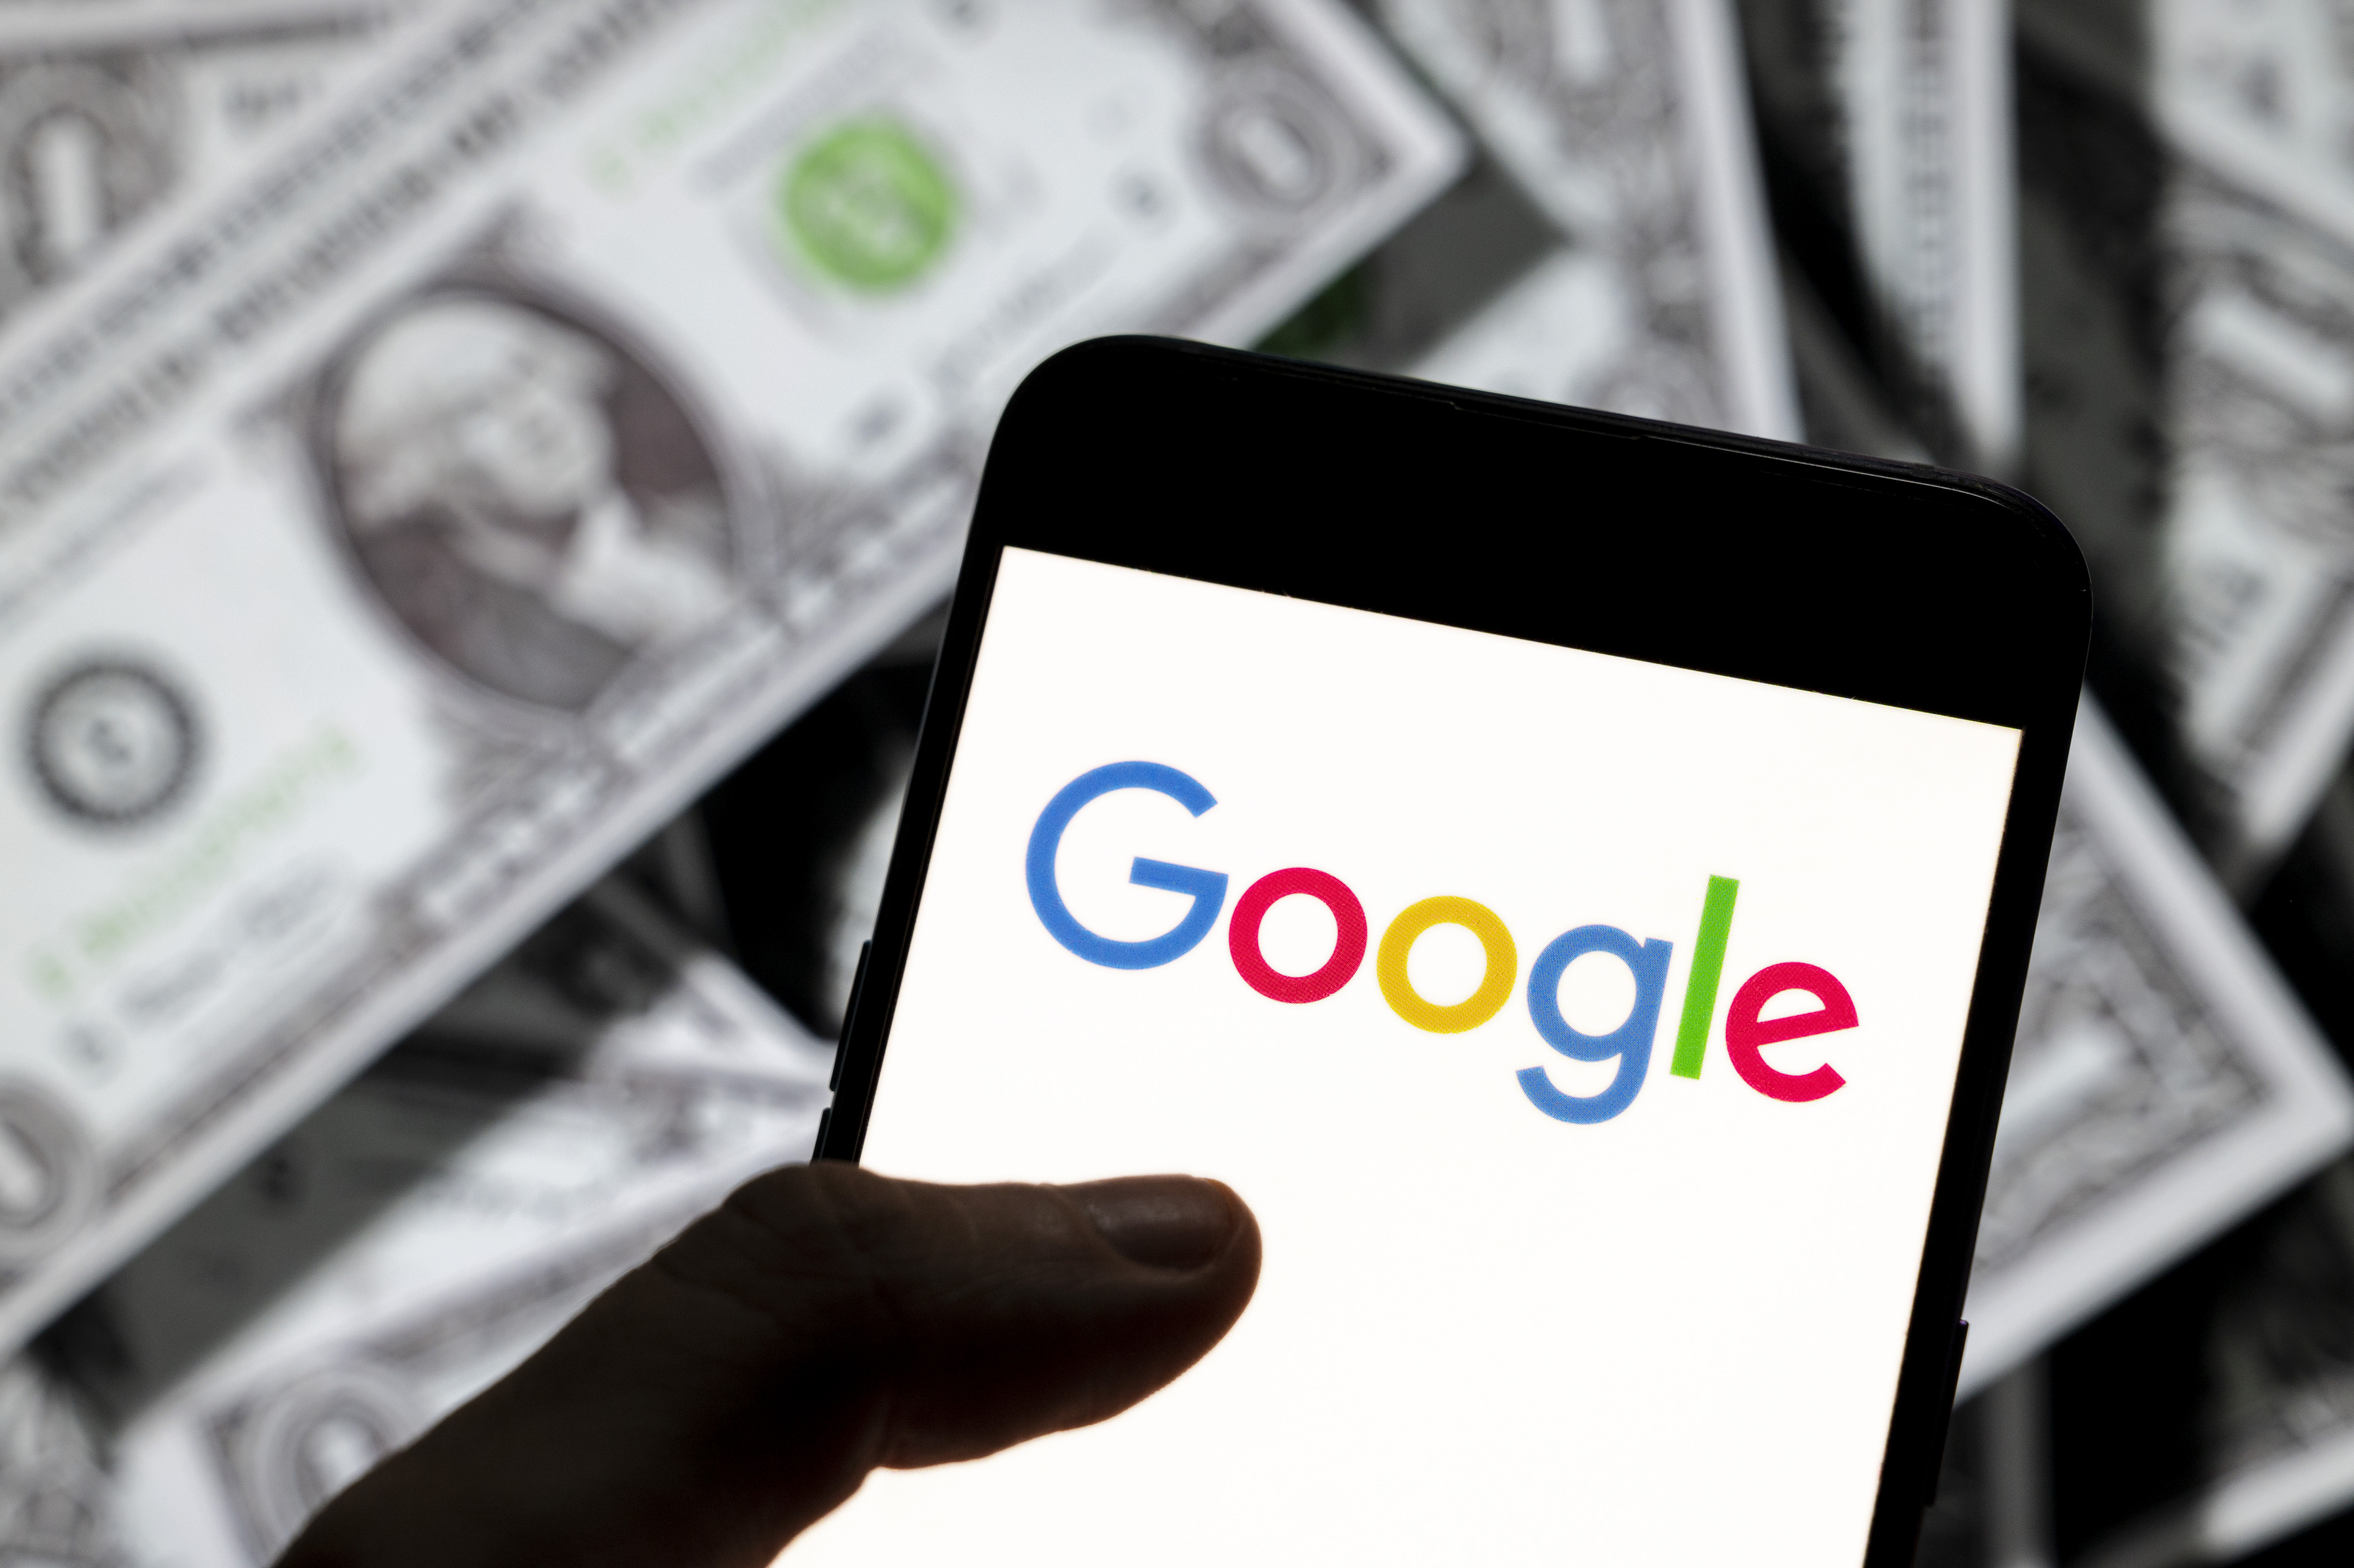 A photo illustration shows a pile of dollar bills behind a hand holding a smartphone screen displaying the Google logo.